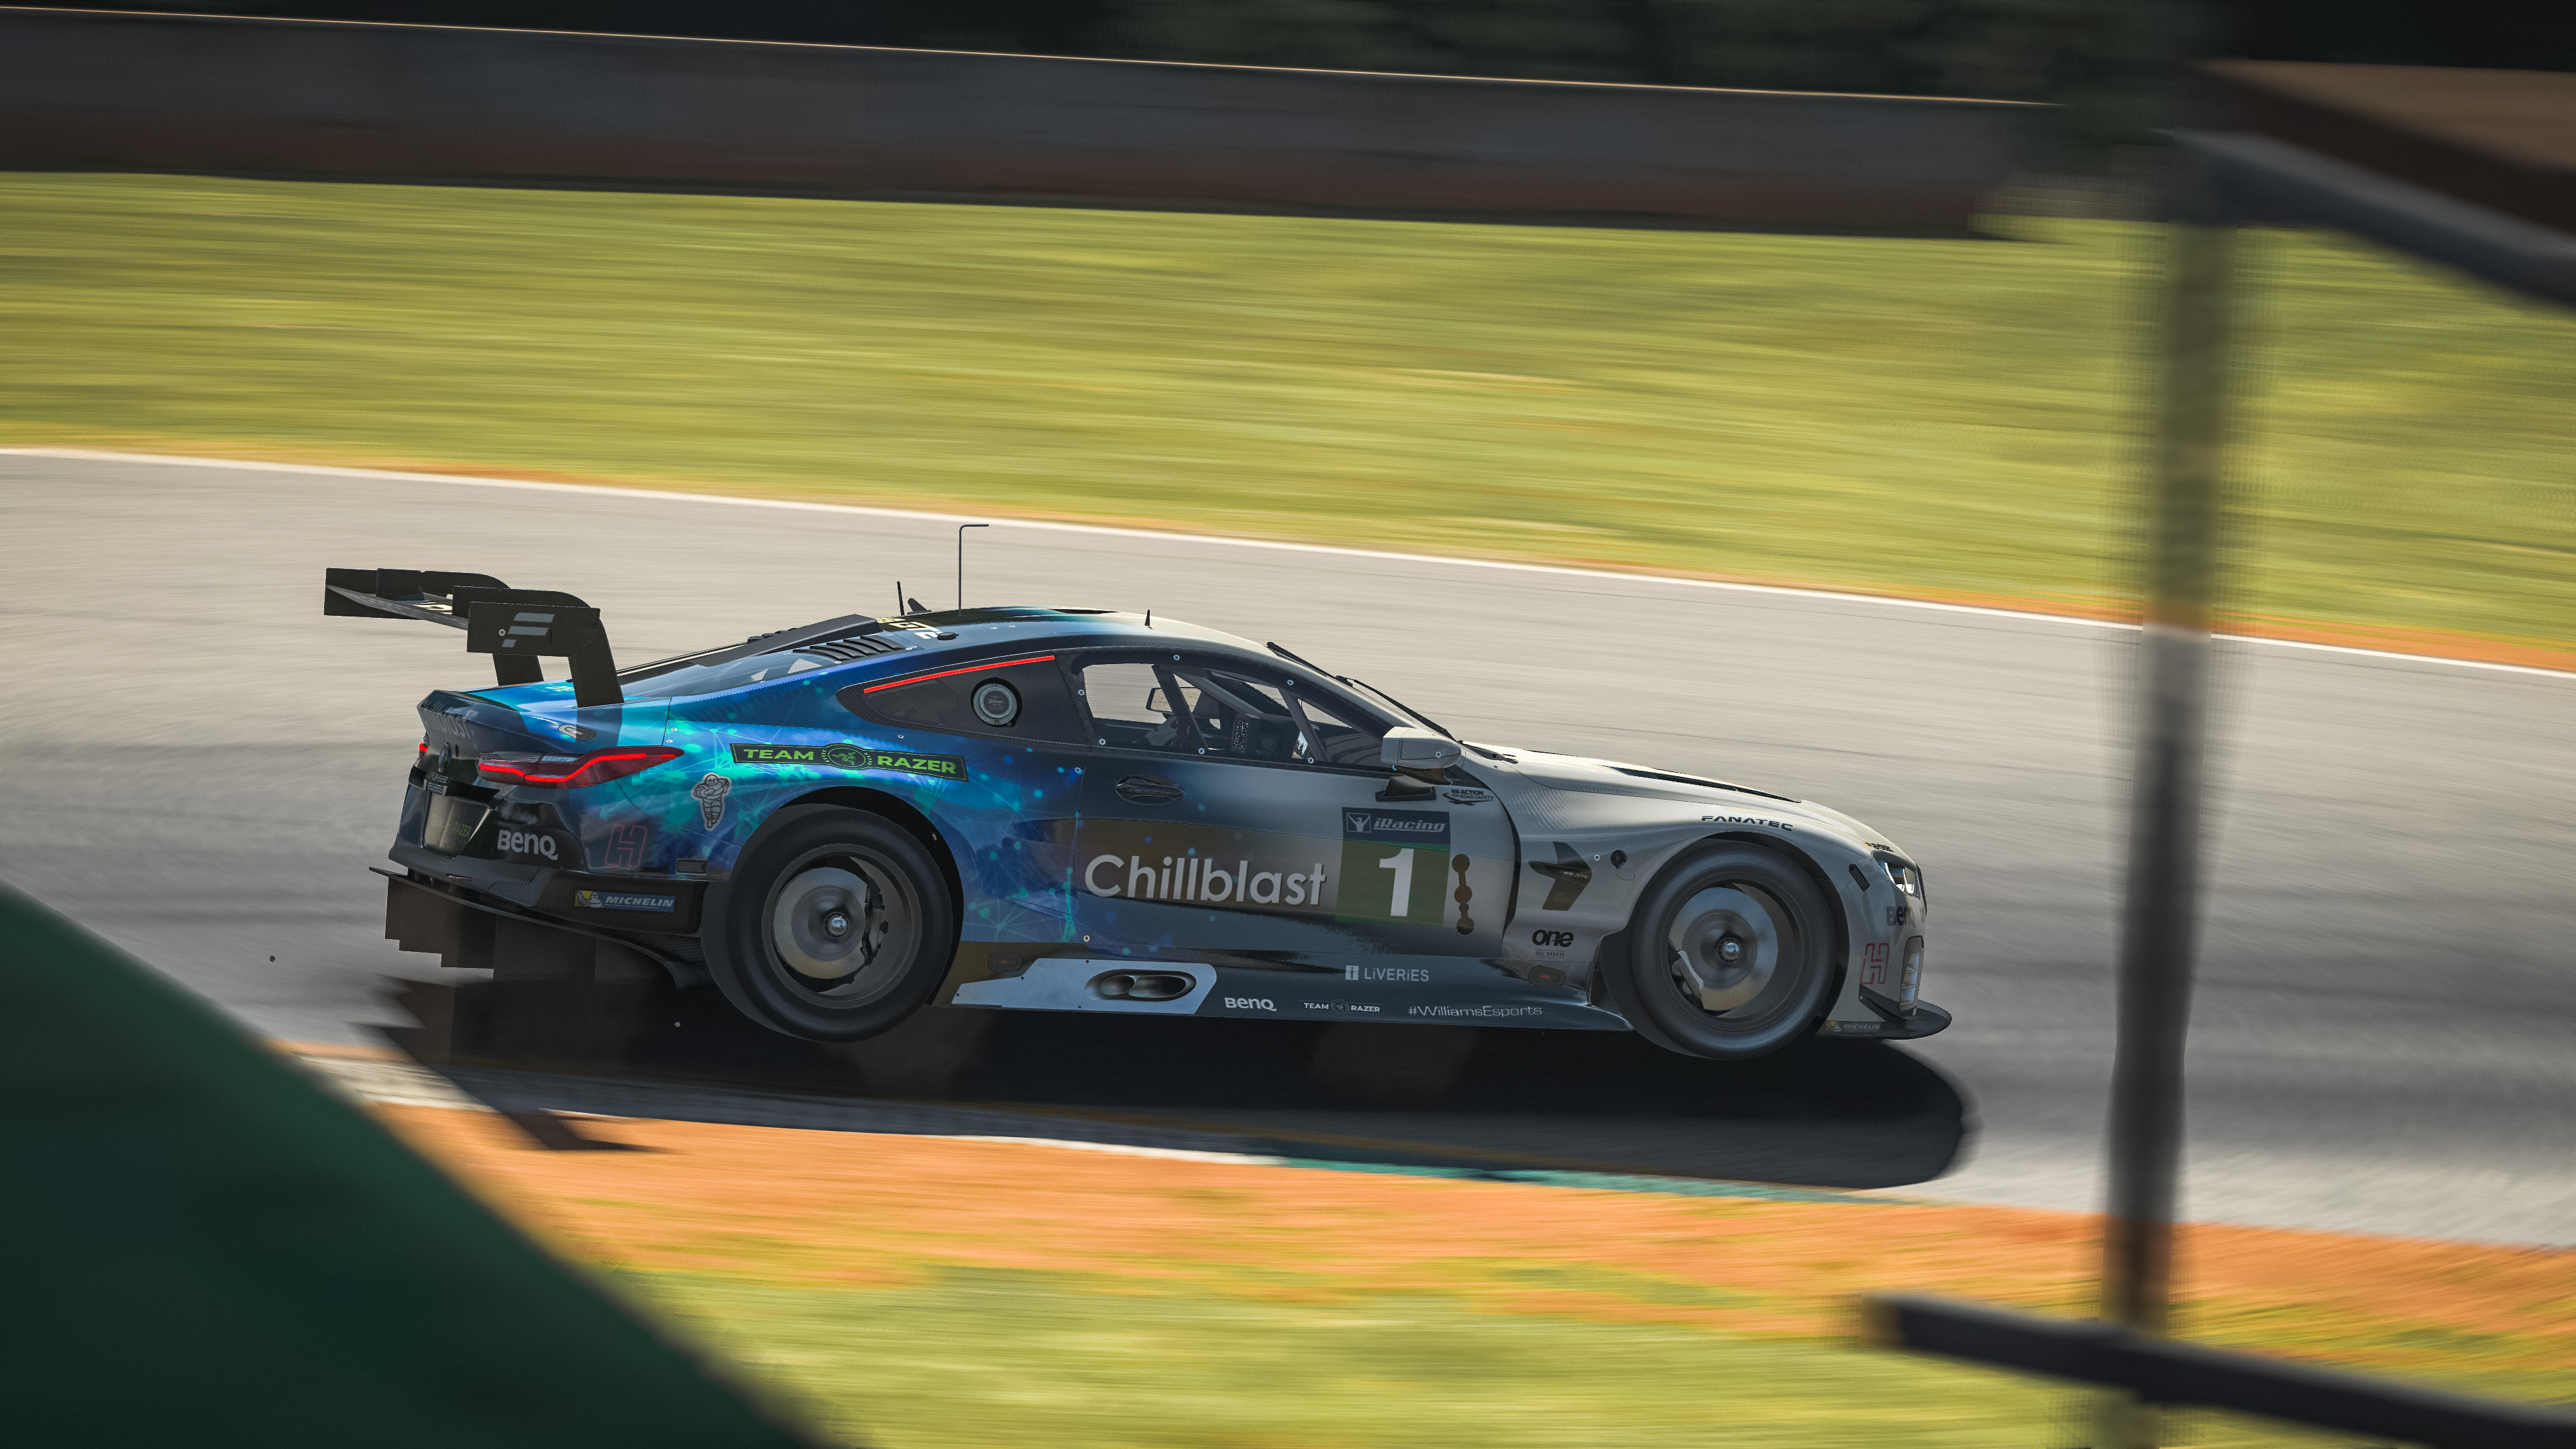 Iracing Petit Le Mans Williams Chill Pic 1